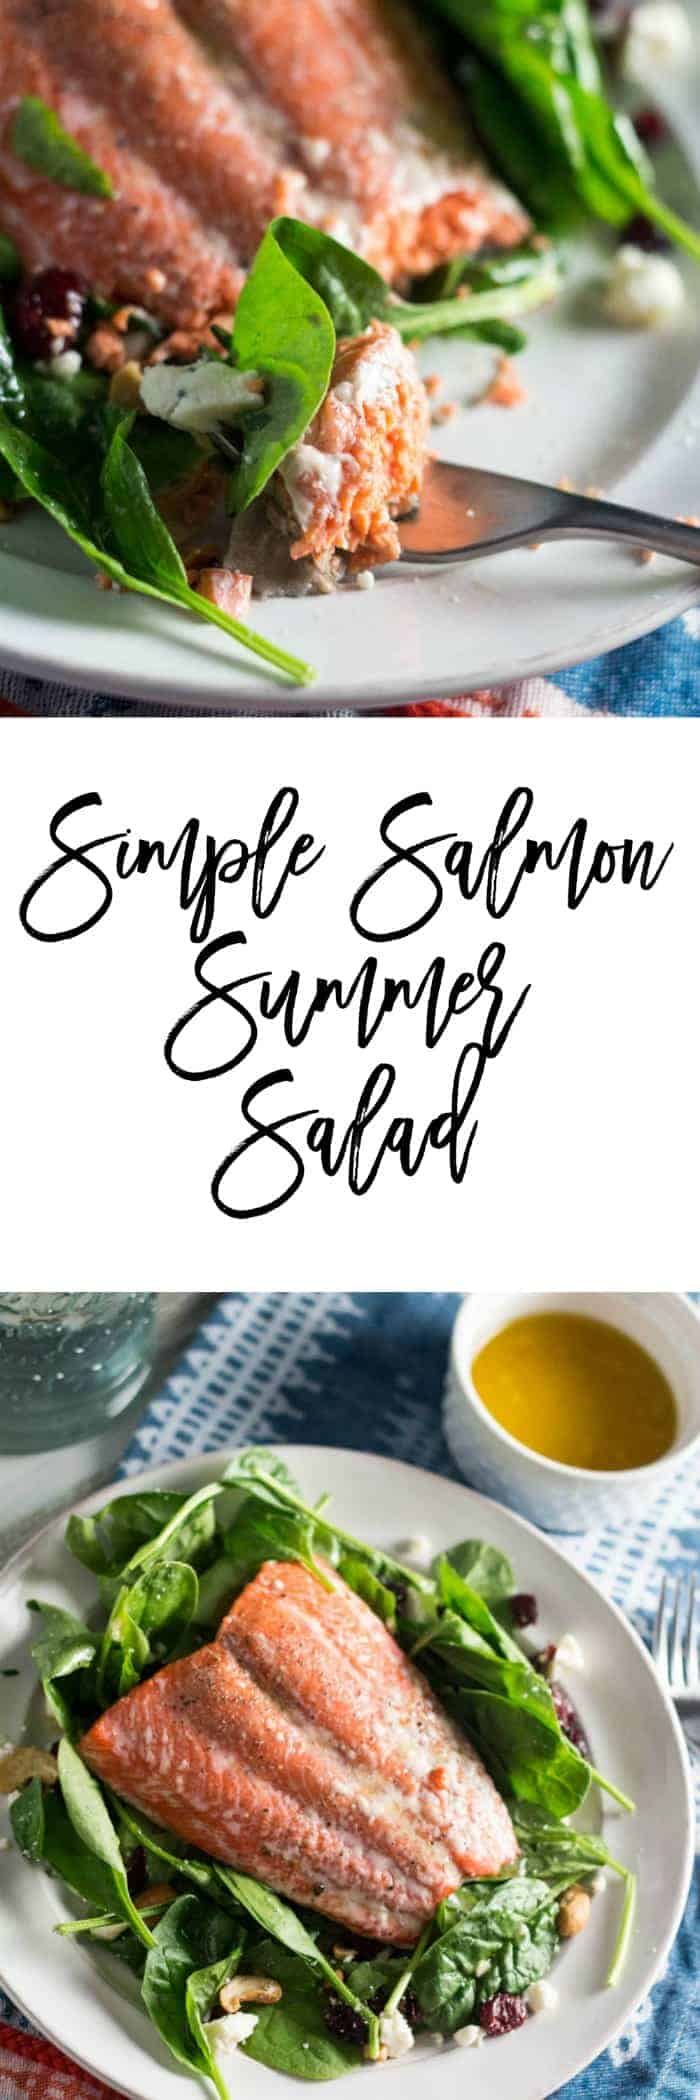 Let's conquer the summer slump by making this easy simple salmon summer salad recipe with a homemade lemon and honey vinaigrette. It really does take about 12 minutes to cook and can be prepped in less time than that. Plus, it's only 12 SmartPoints per serving on Weight Watchers, so you know it's healthy too.